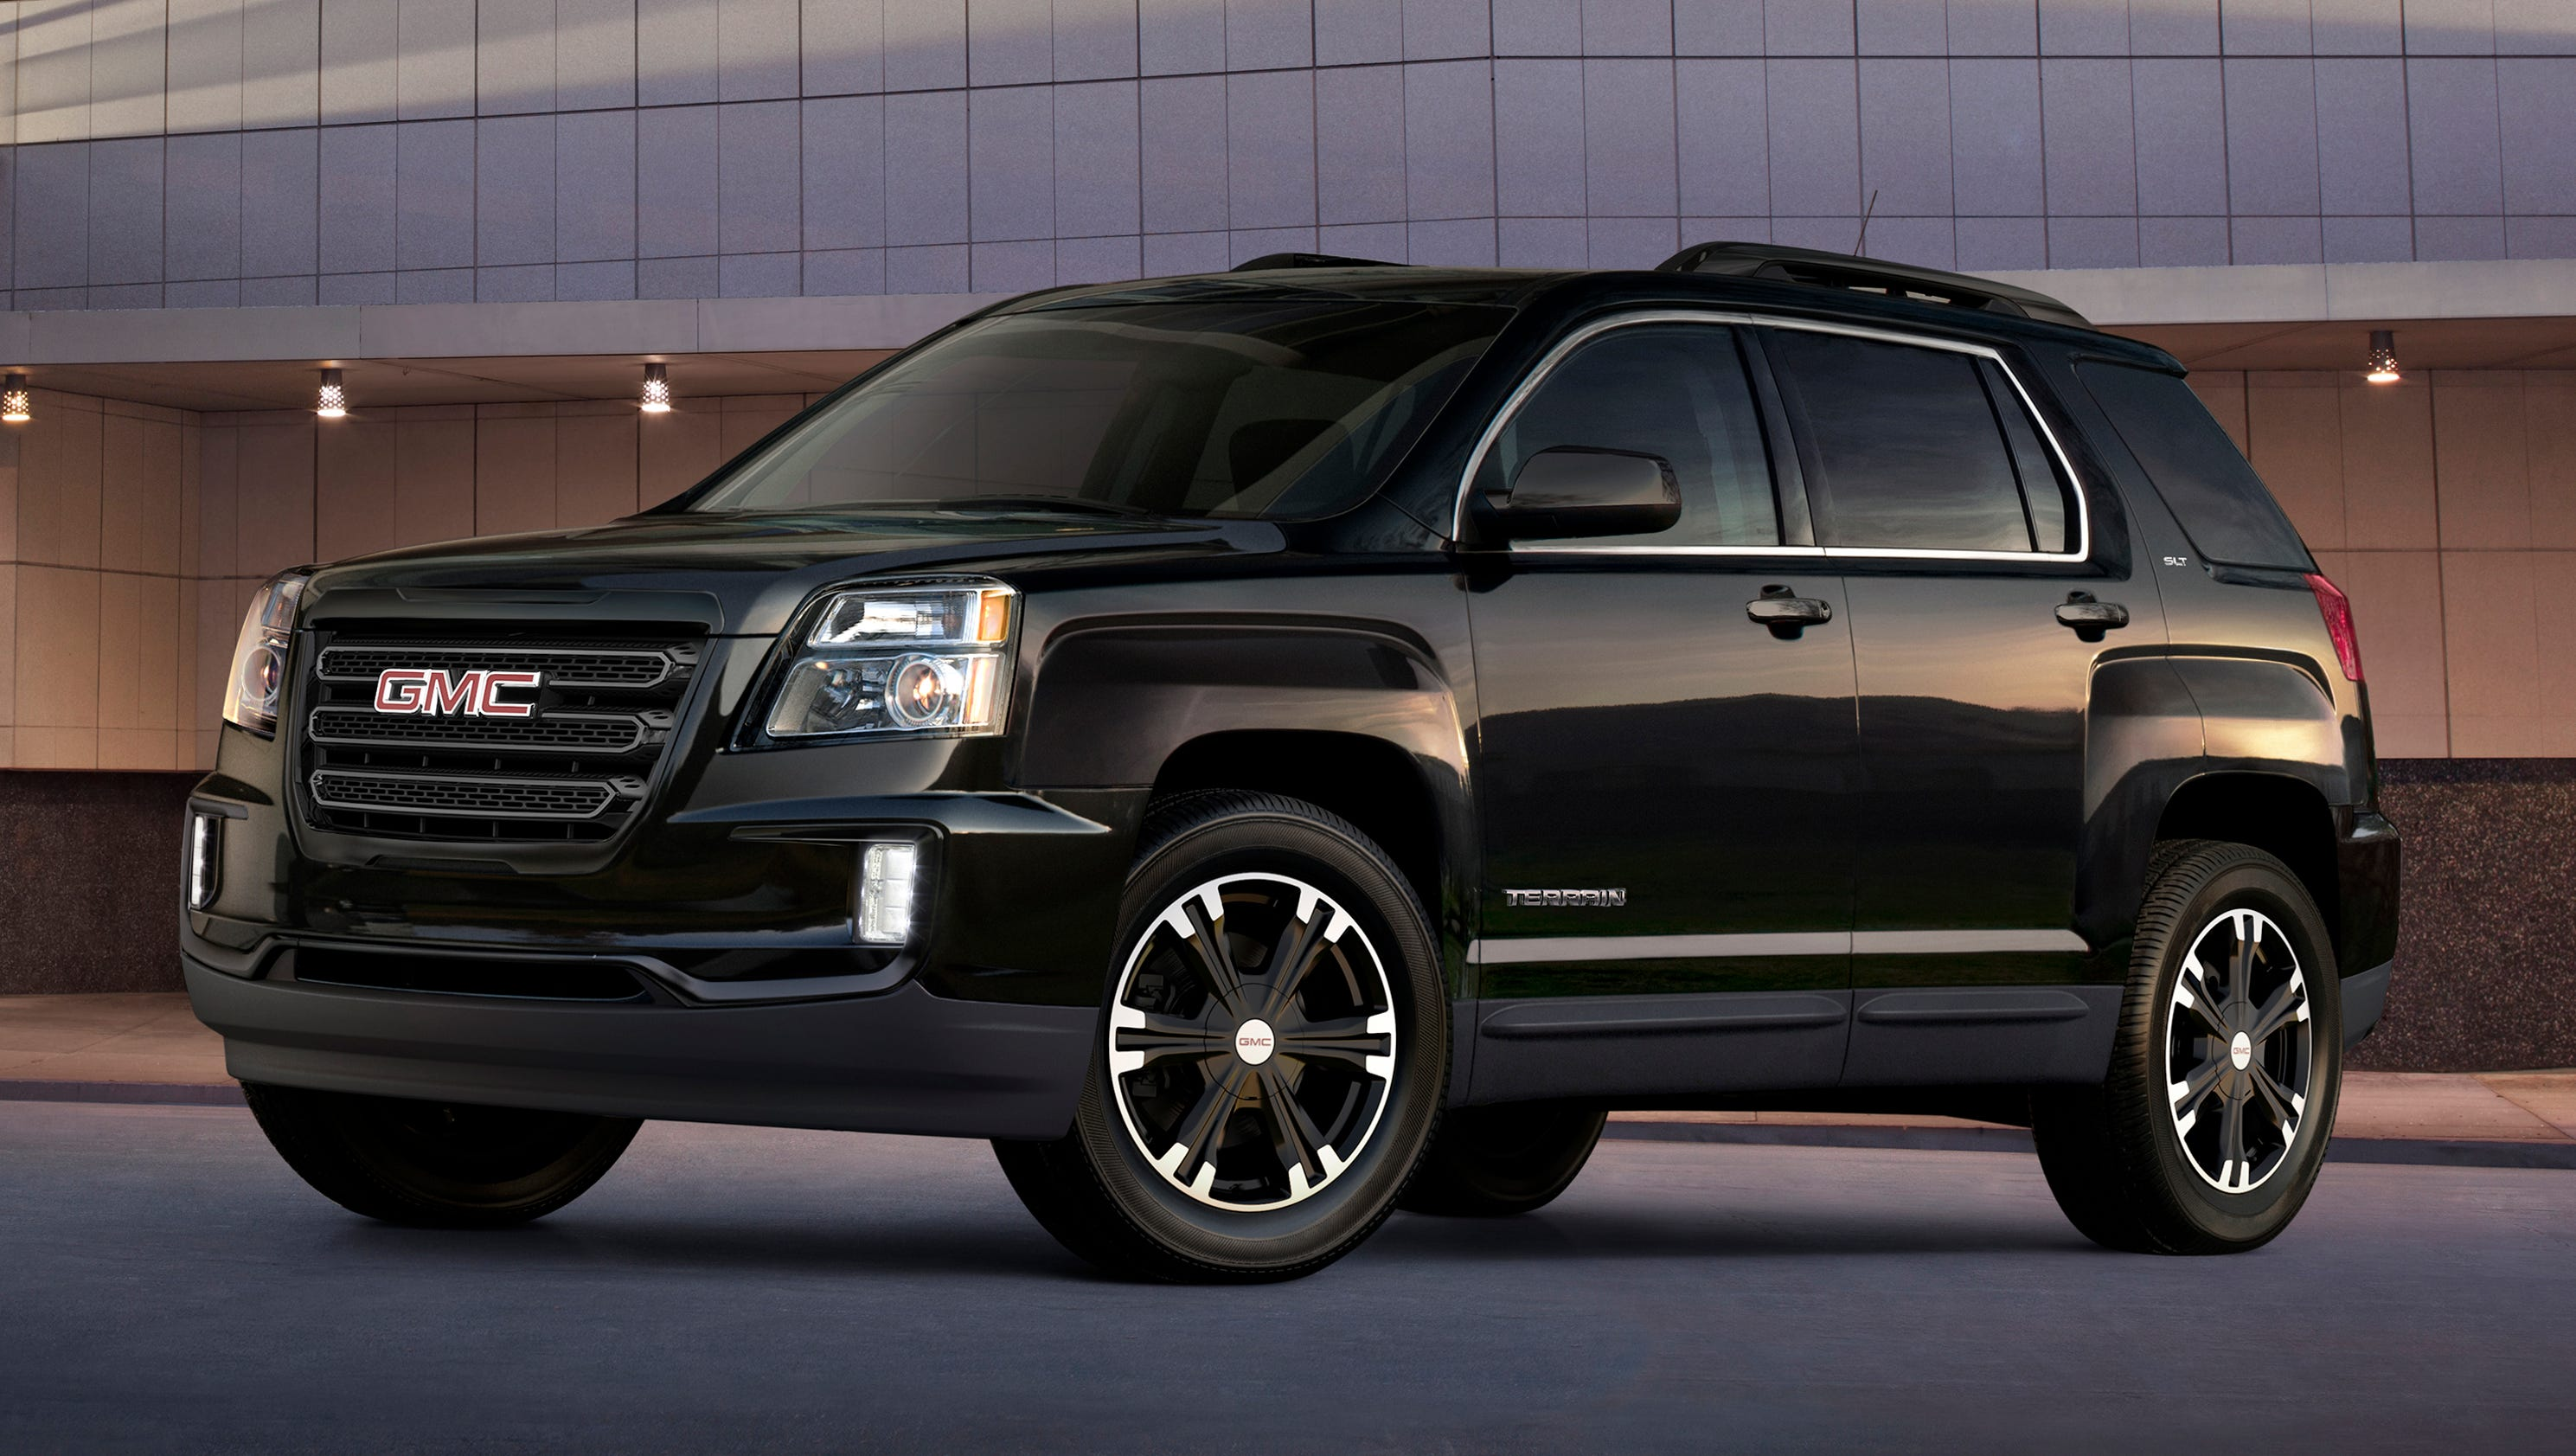 yukon updates suvs gmc photos automatic news speed transmission for the denali included